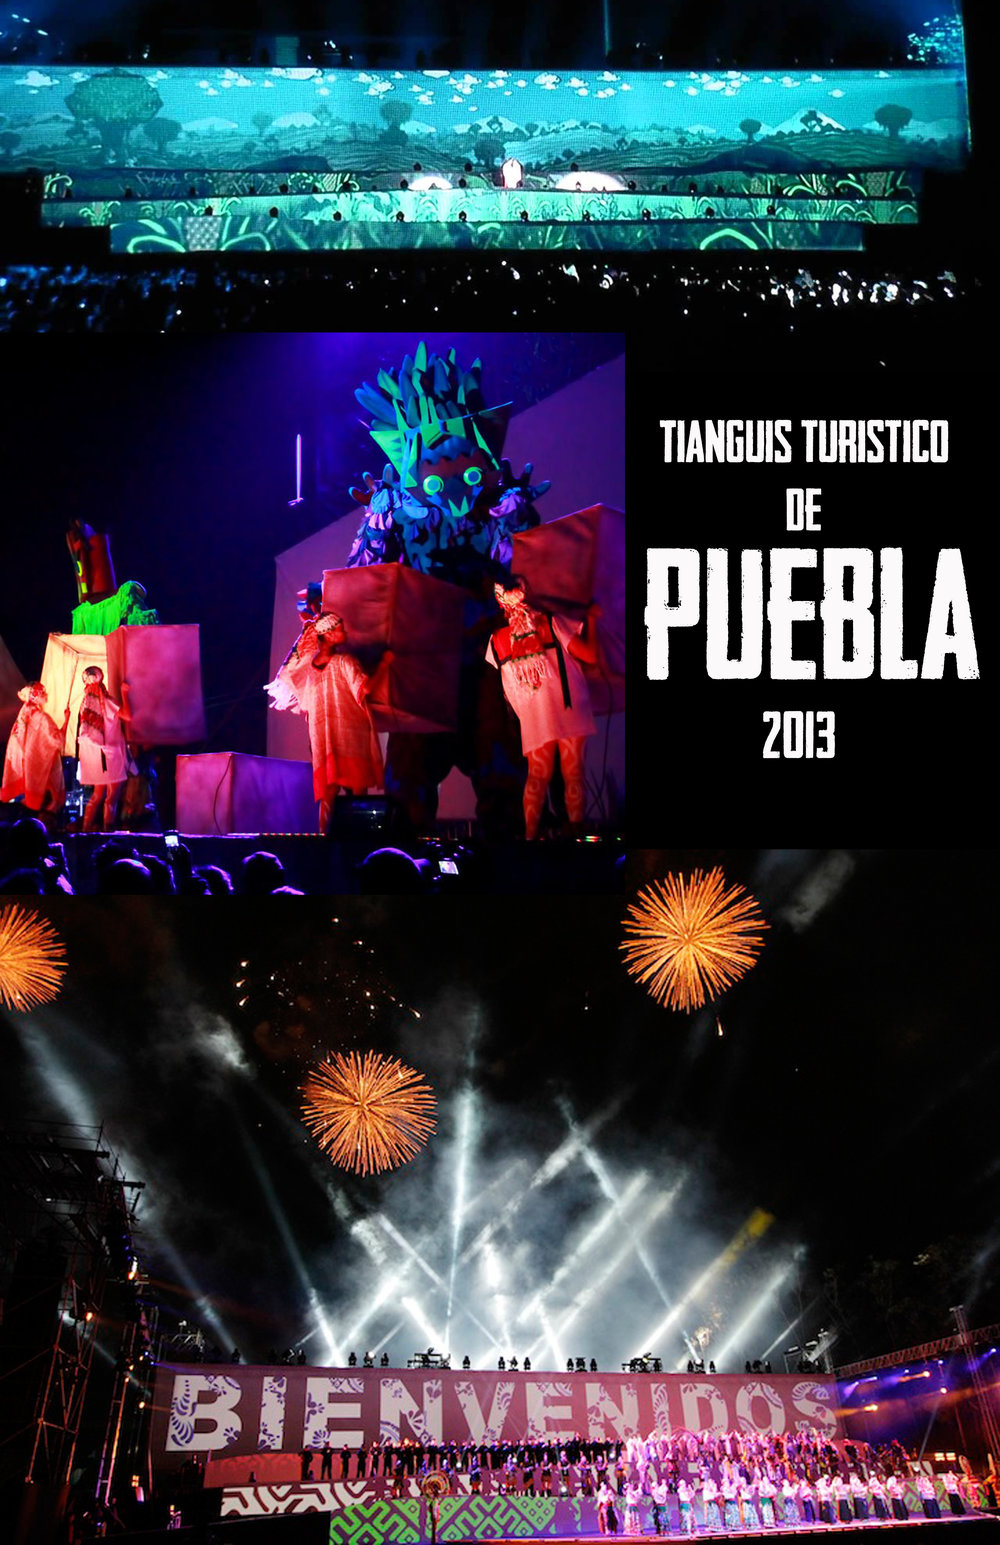 FUNDADA POR ANGELES EN TIERRA DE GIGANTES  Production inspired in the founding of Puebla, Mexico. Premier: March 18th, 2013 Direction: Hiram Marina, Production: COCOLAB / CREA Location: Plaza de La Victoria / Los Fuertes de Puebla 7 Representations with more than 85,000 spectators   https://vimeo.com/65859909